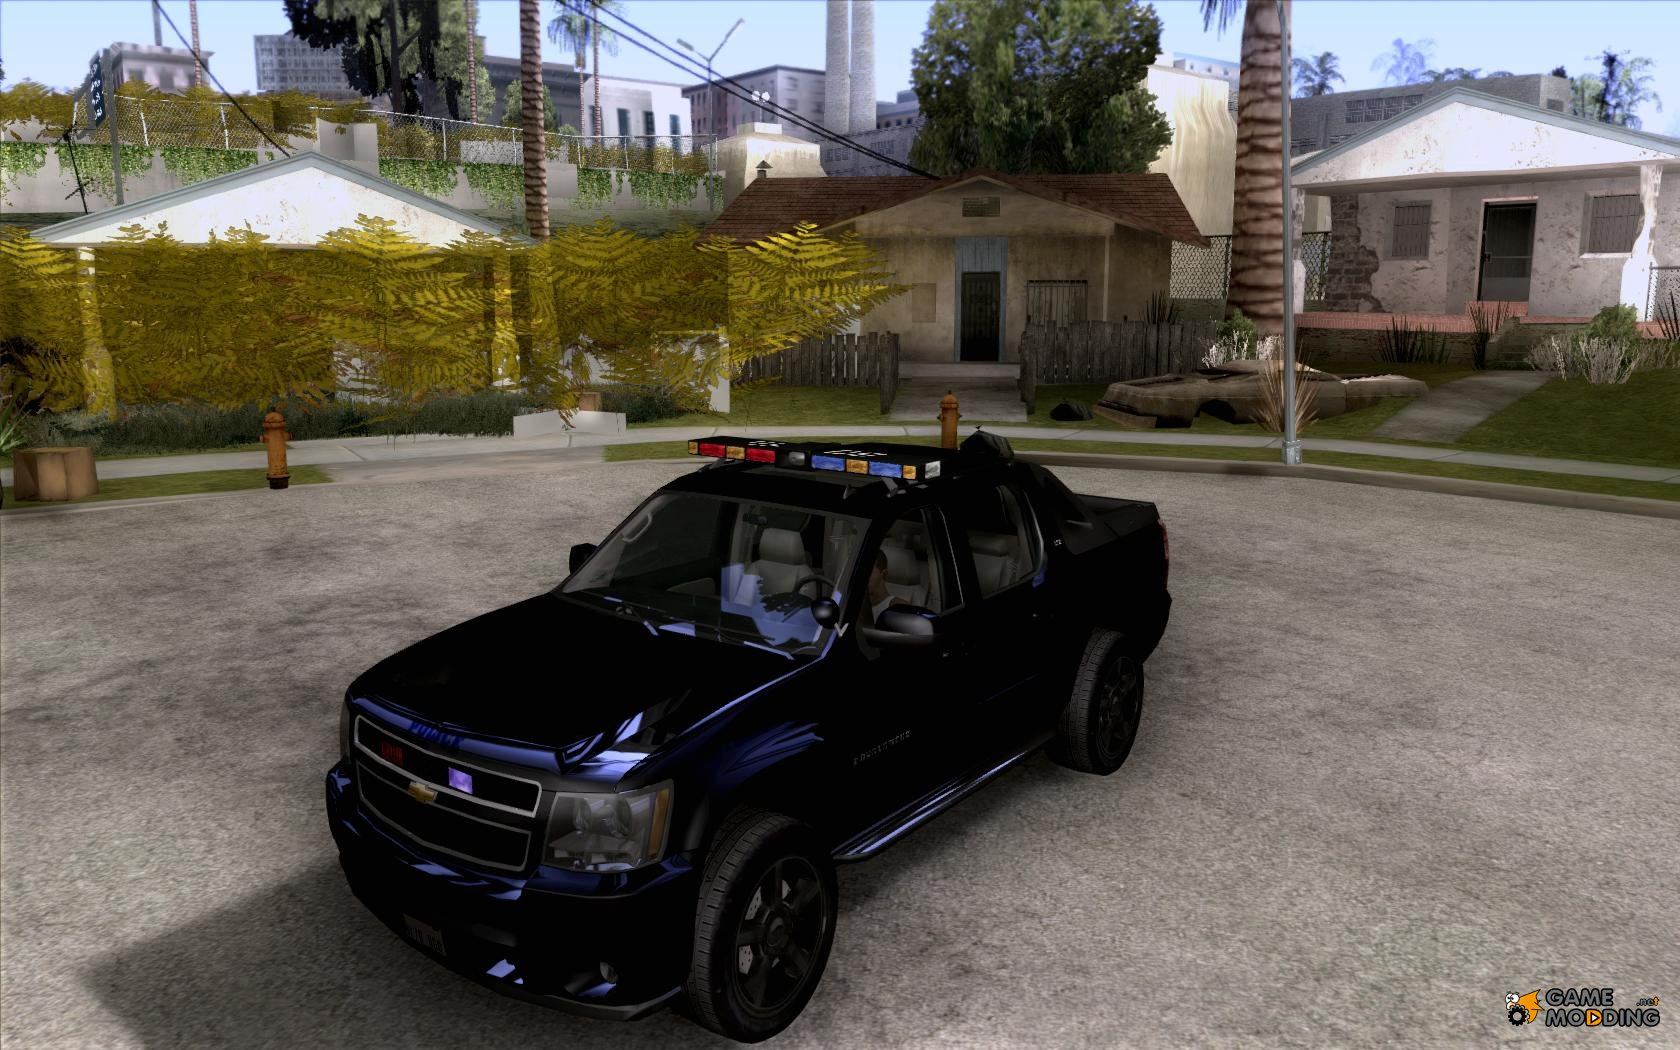 Chevrolet Avalanche Police for GTA San Andreas Gta San Andreas Police Cars